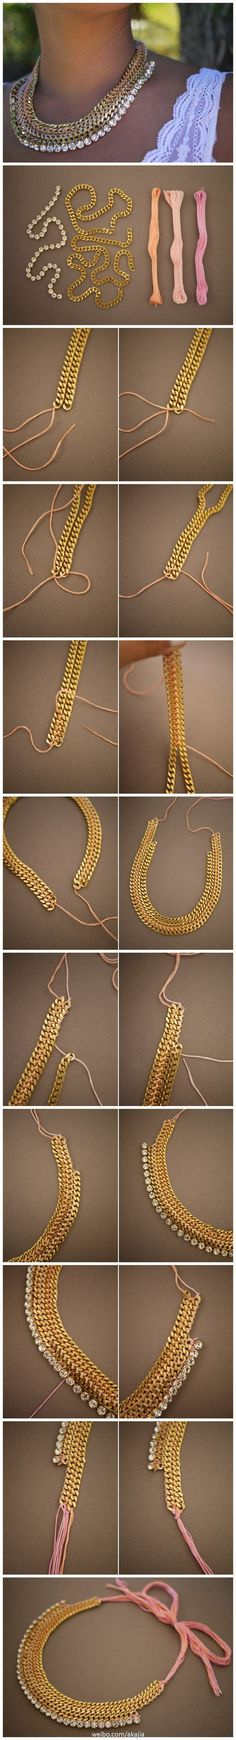 DIY chain necklace. Ditch the rhinestones and tie them together with fishing line so its clear and then have strong/ribbon looped at the end to tie